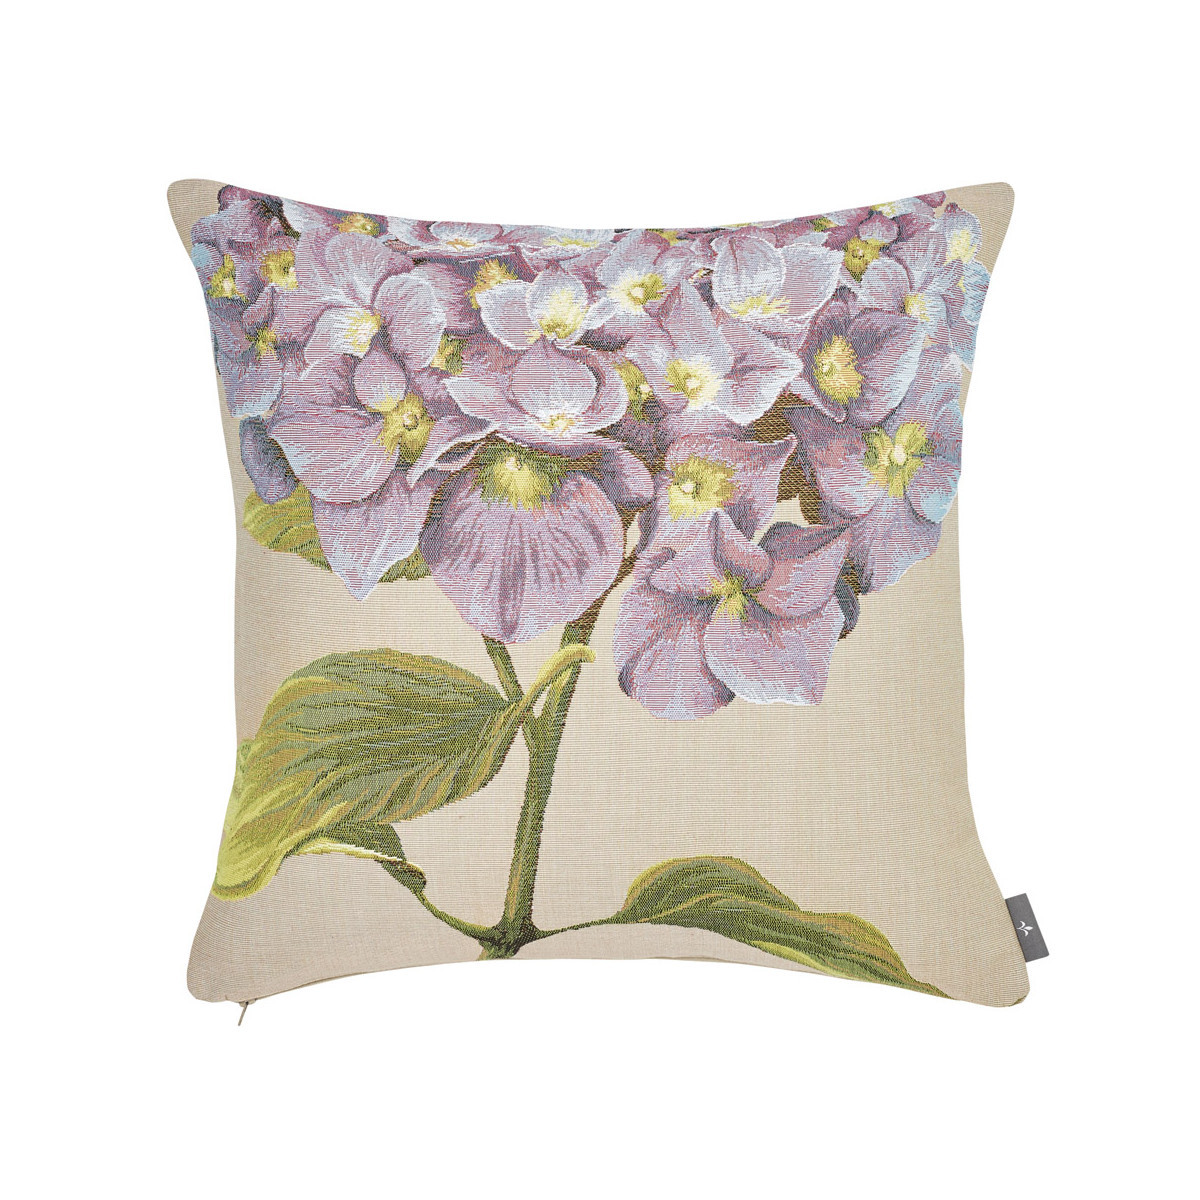 Coussin tapisserie hortensias made in france beige   50x50